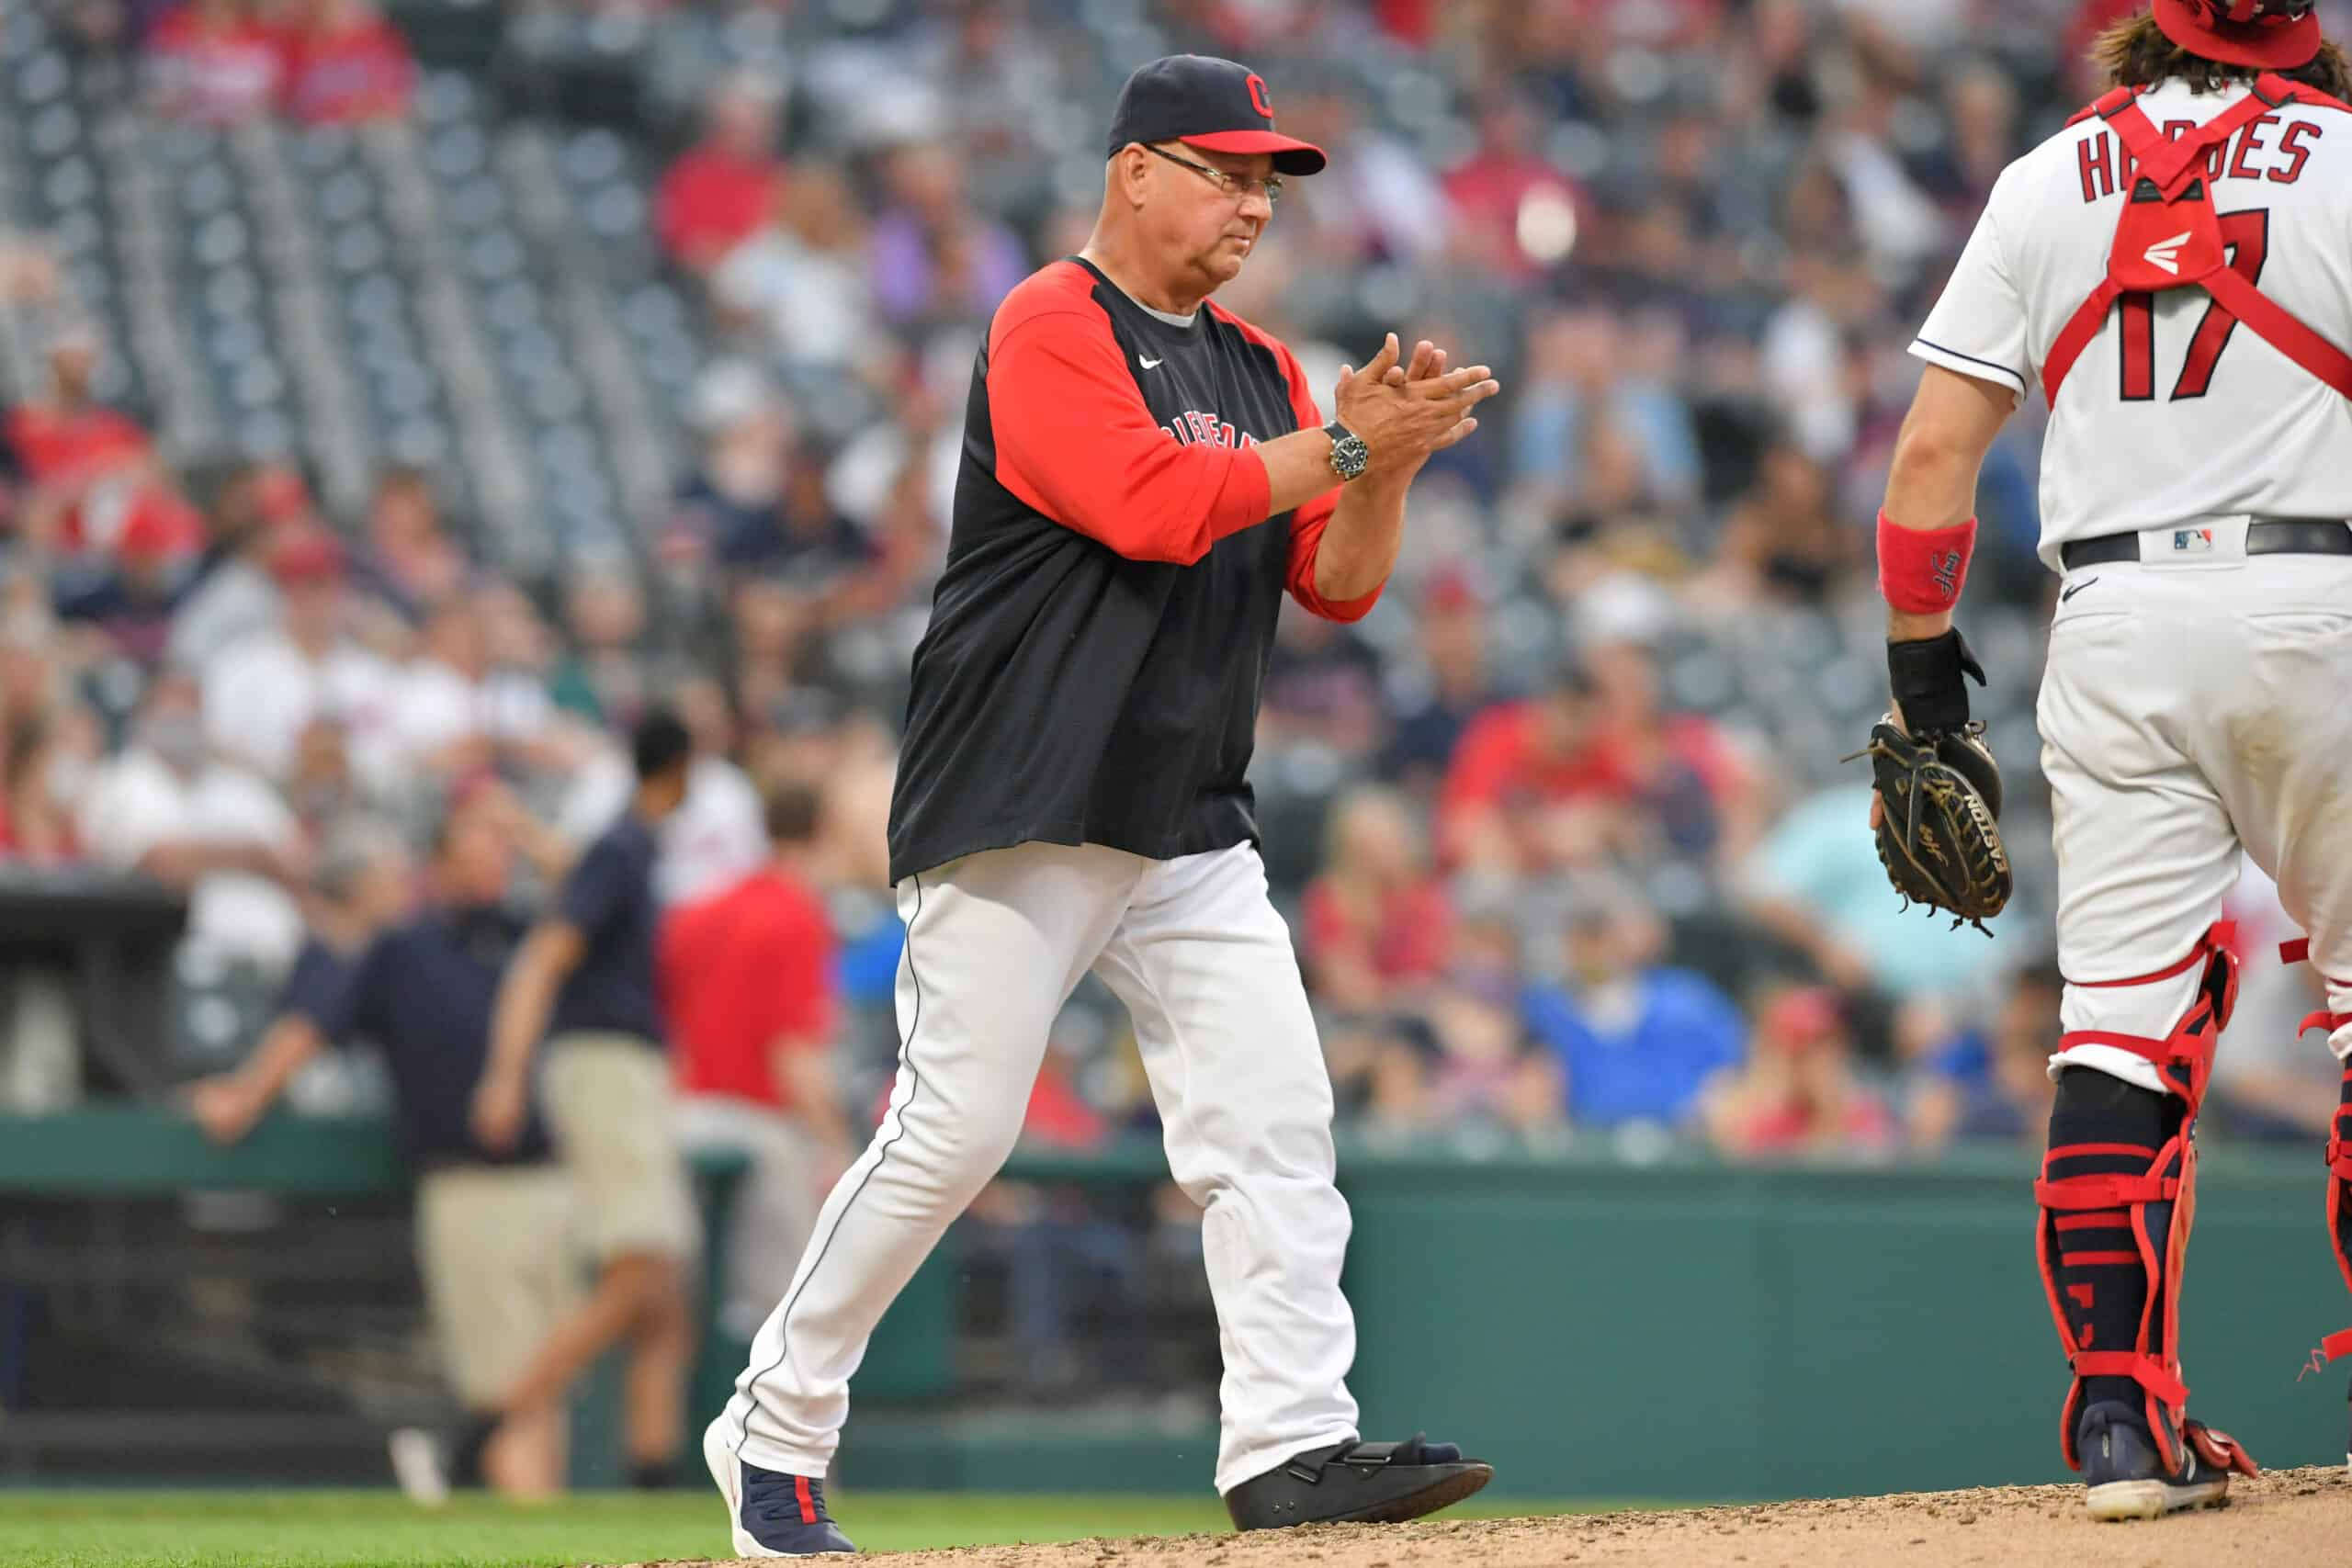 Manager Terry Francona #77 of the Cleveland Indians visits the mound for his second pitching change during the fourth inning against the Minnesota Twins at Progressive Field on May 21, 2021 in Cleveland, Ohio.